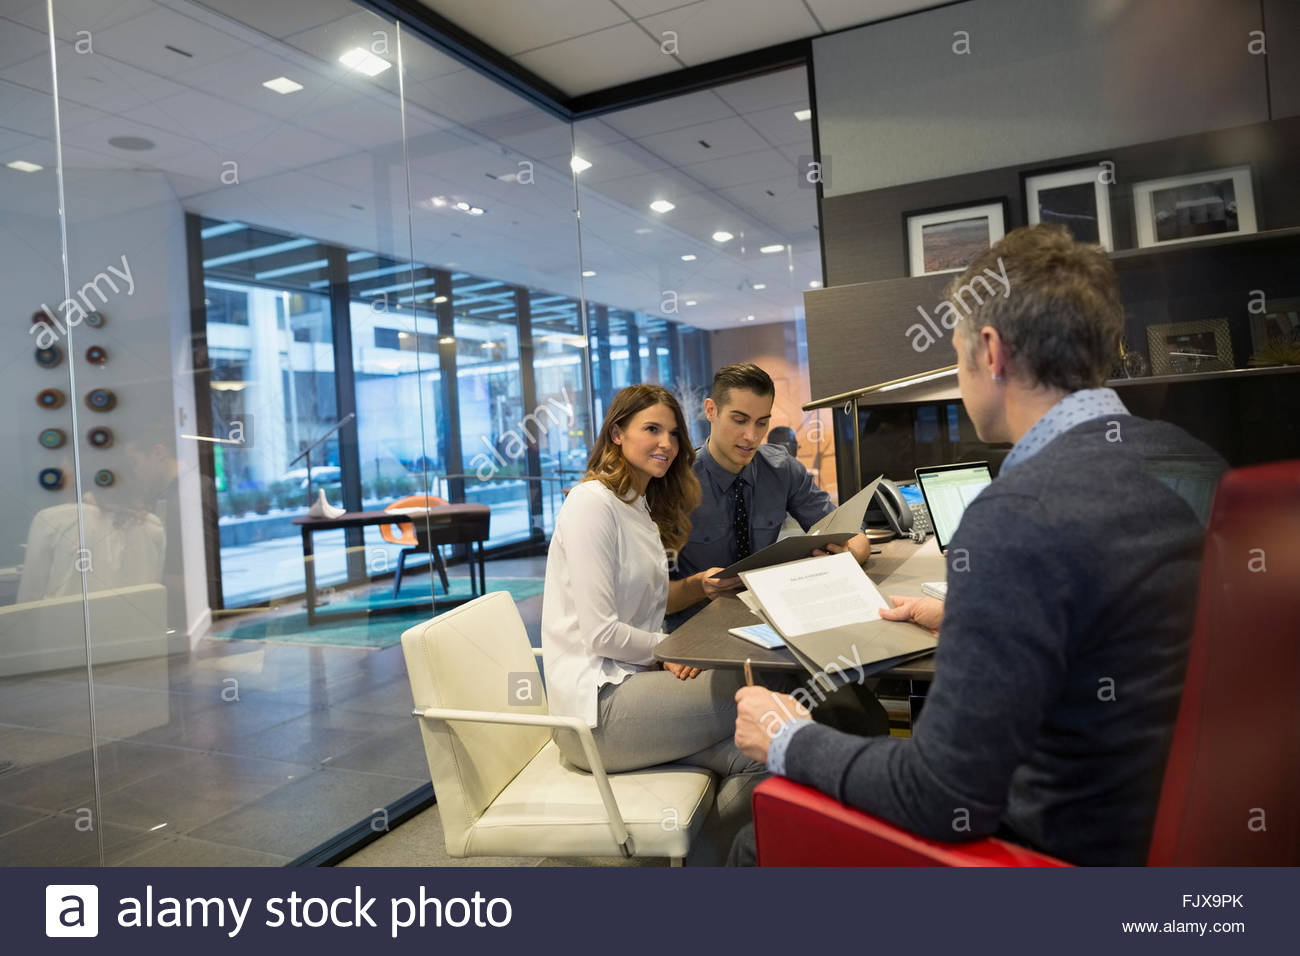 business people meeting boss office 25-29 years - Stock Image